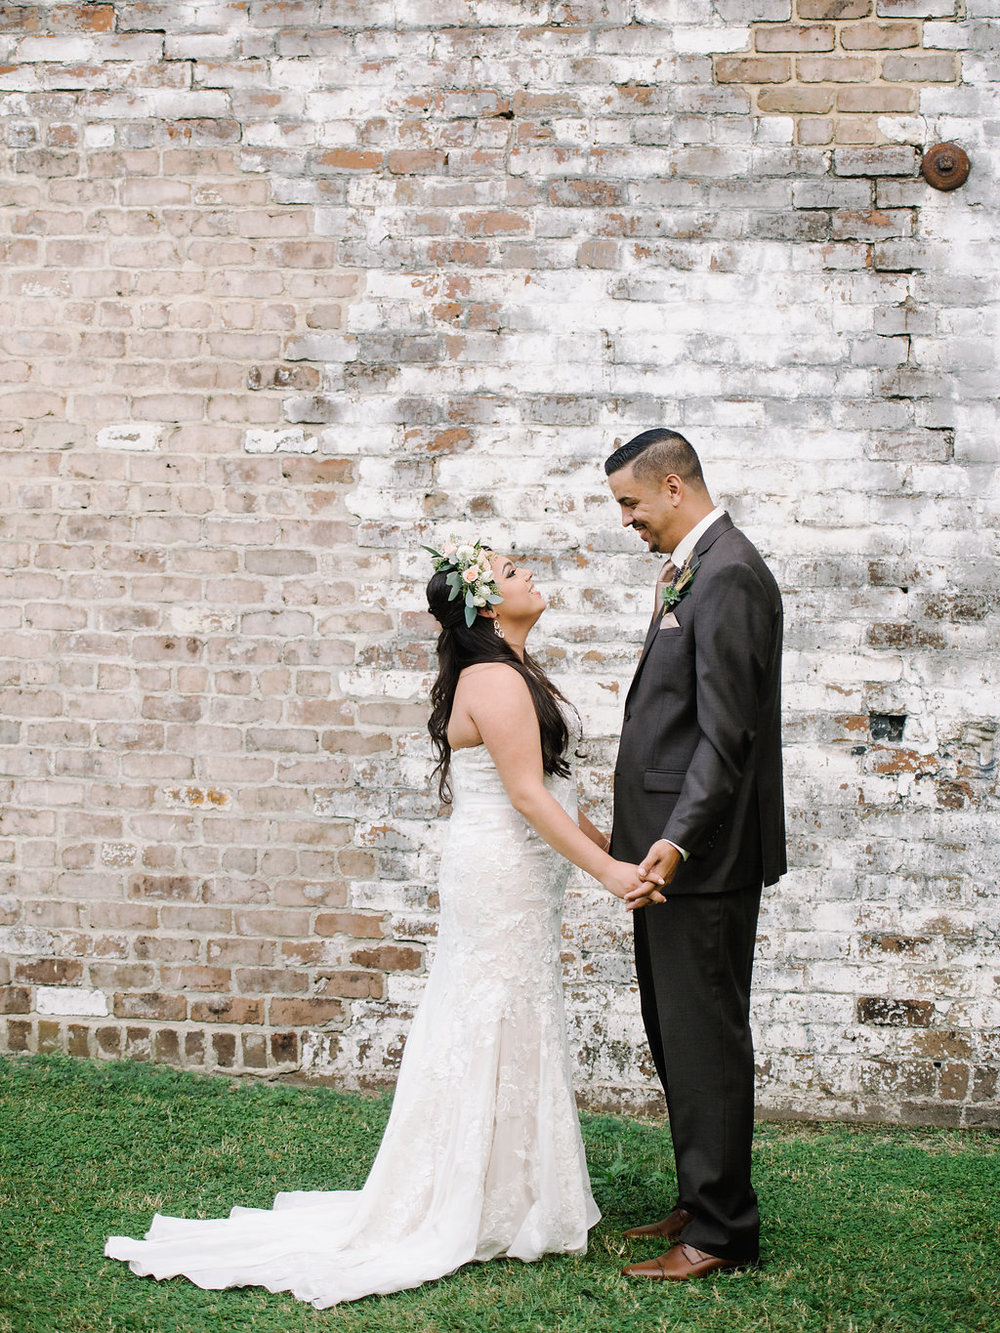 sabrina-and-ivan-rach-loves-troy-photography-ivory-and-beau-savannah-wedding-planner-savannah-day-of-coordinator-roundhouse-railroad-museum-wedding-rustic-savannah-wedding-savannah-bridal-boutique-savannah-weddings-11.jpg